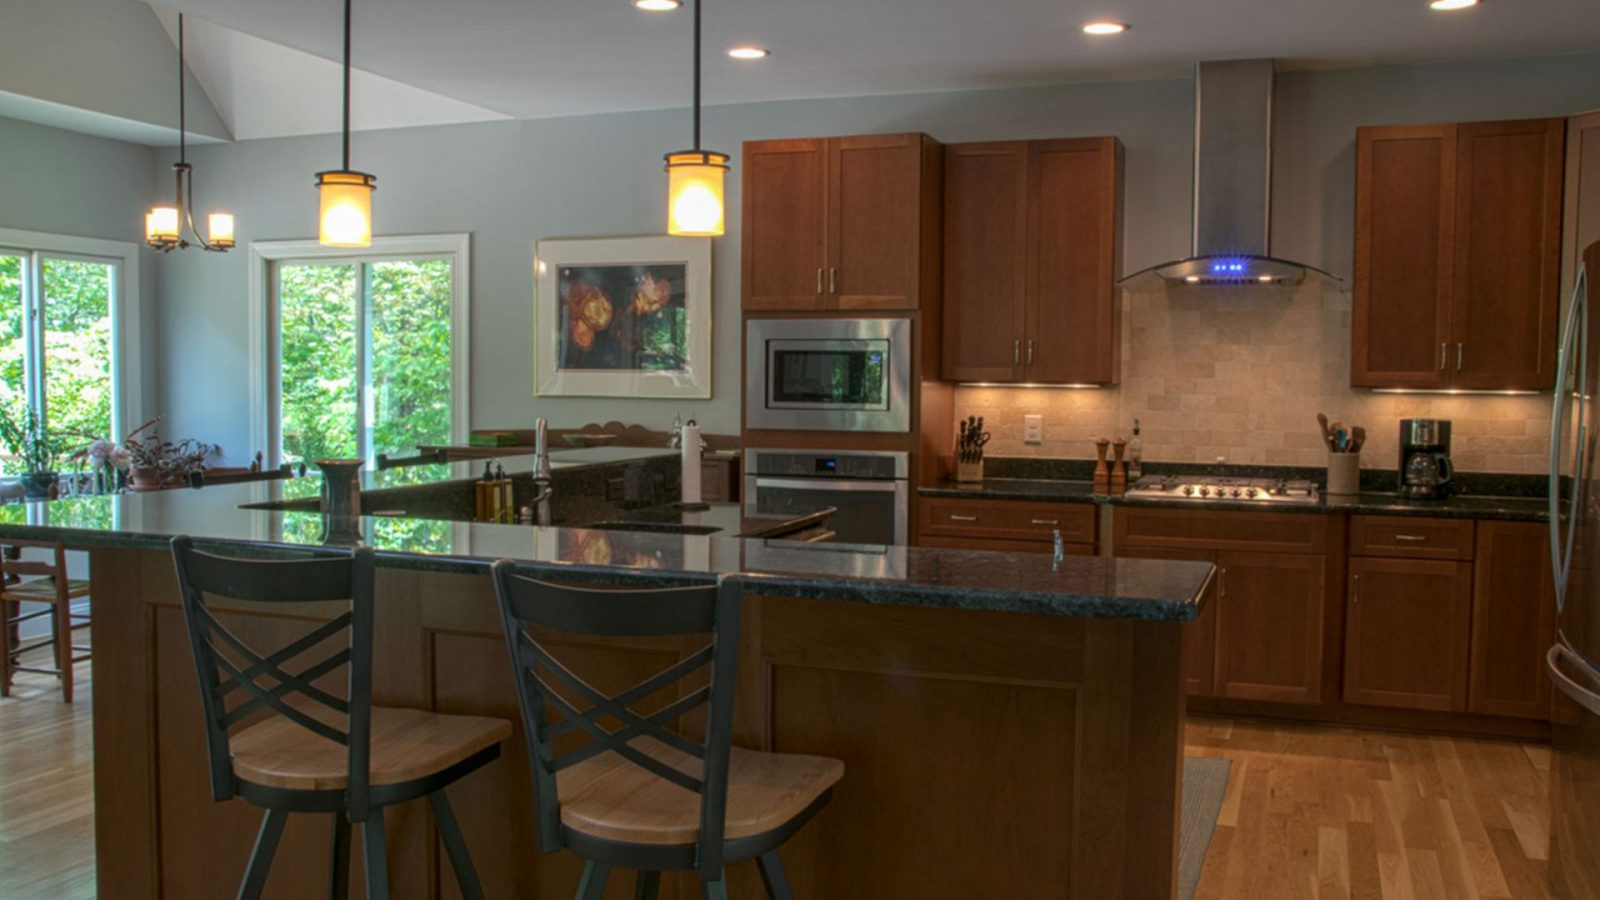 Kitchen remodeling tips for everyone